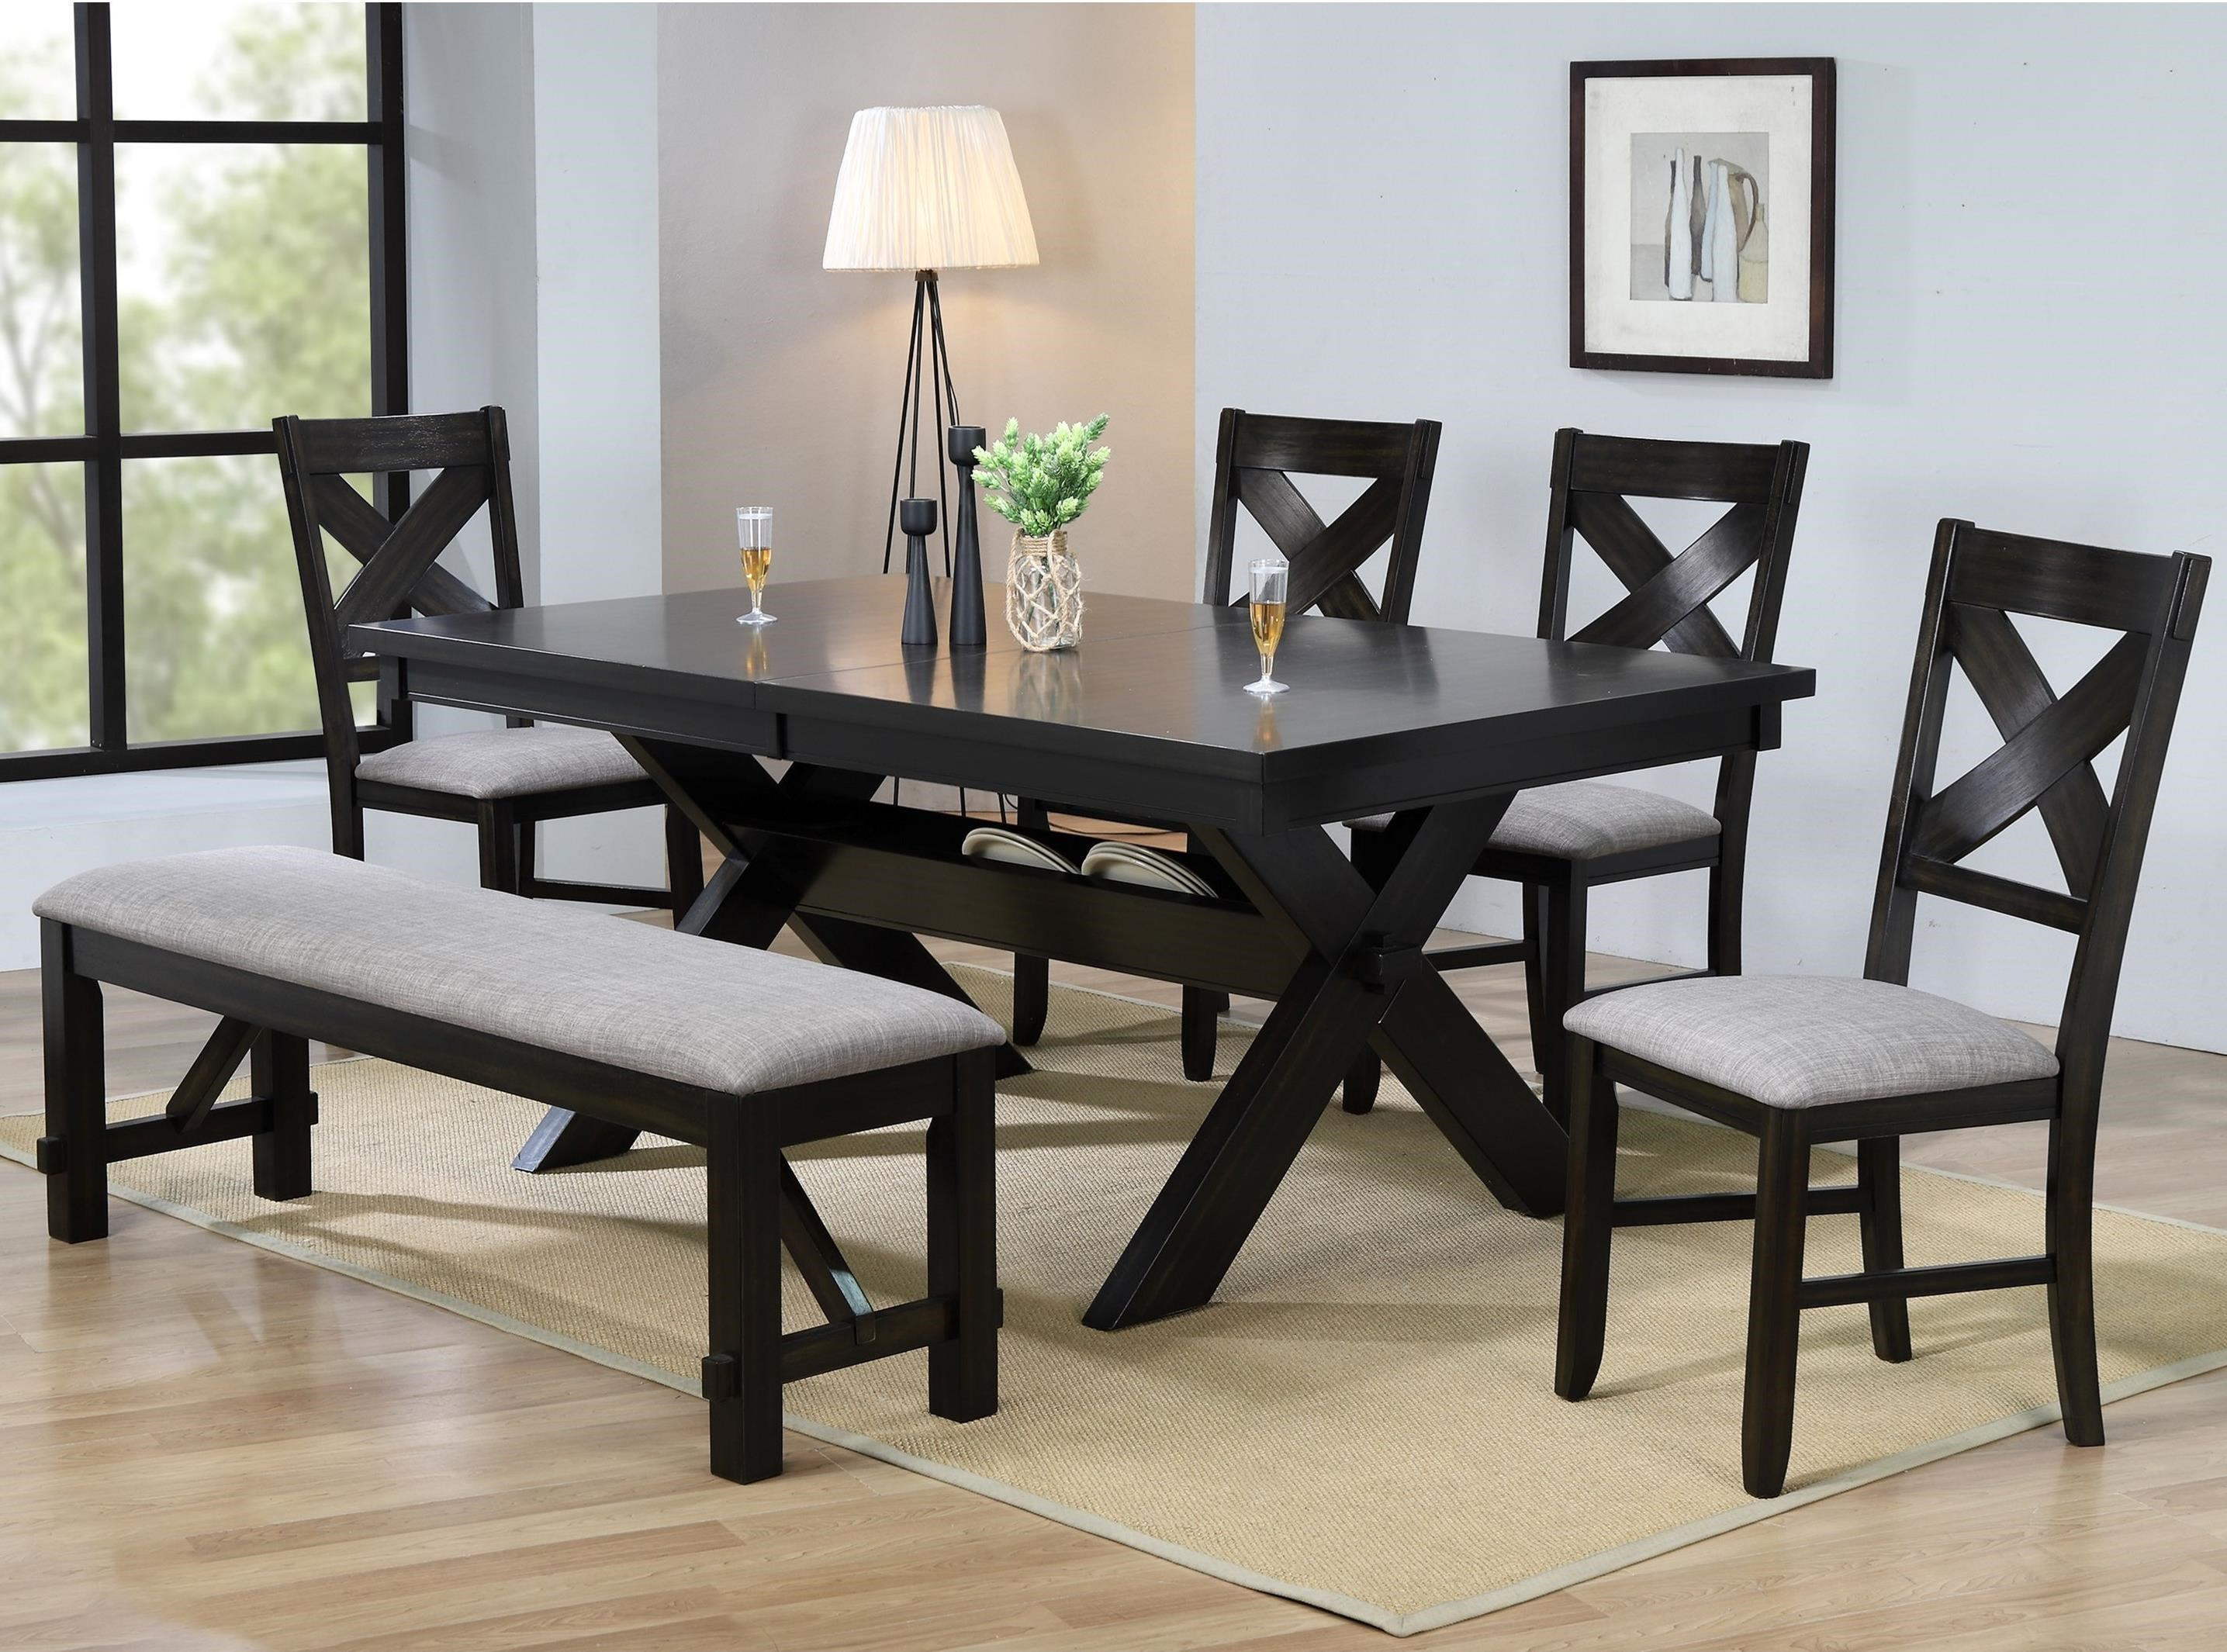 Havana 8 Piece Table & Chair Set by Crown Mark at Northeast Factory Direct